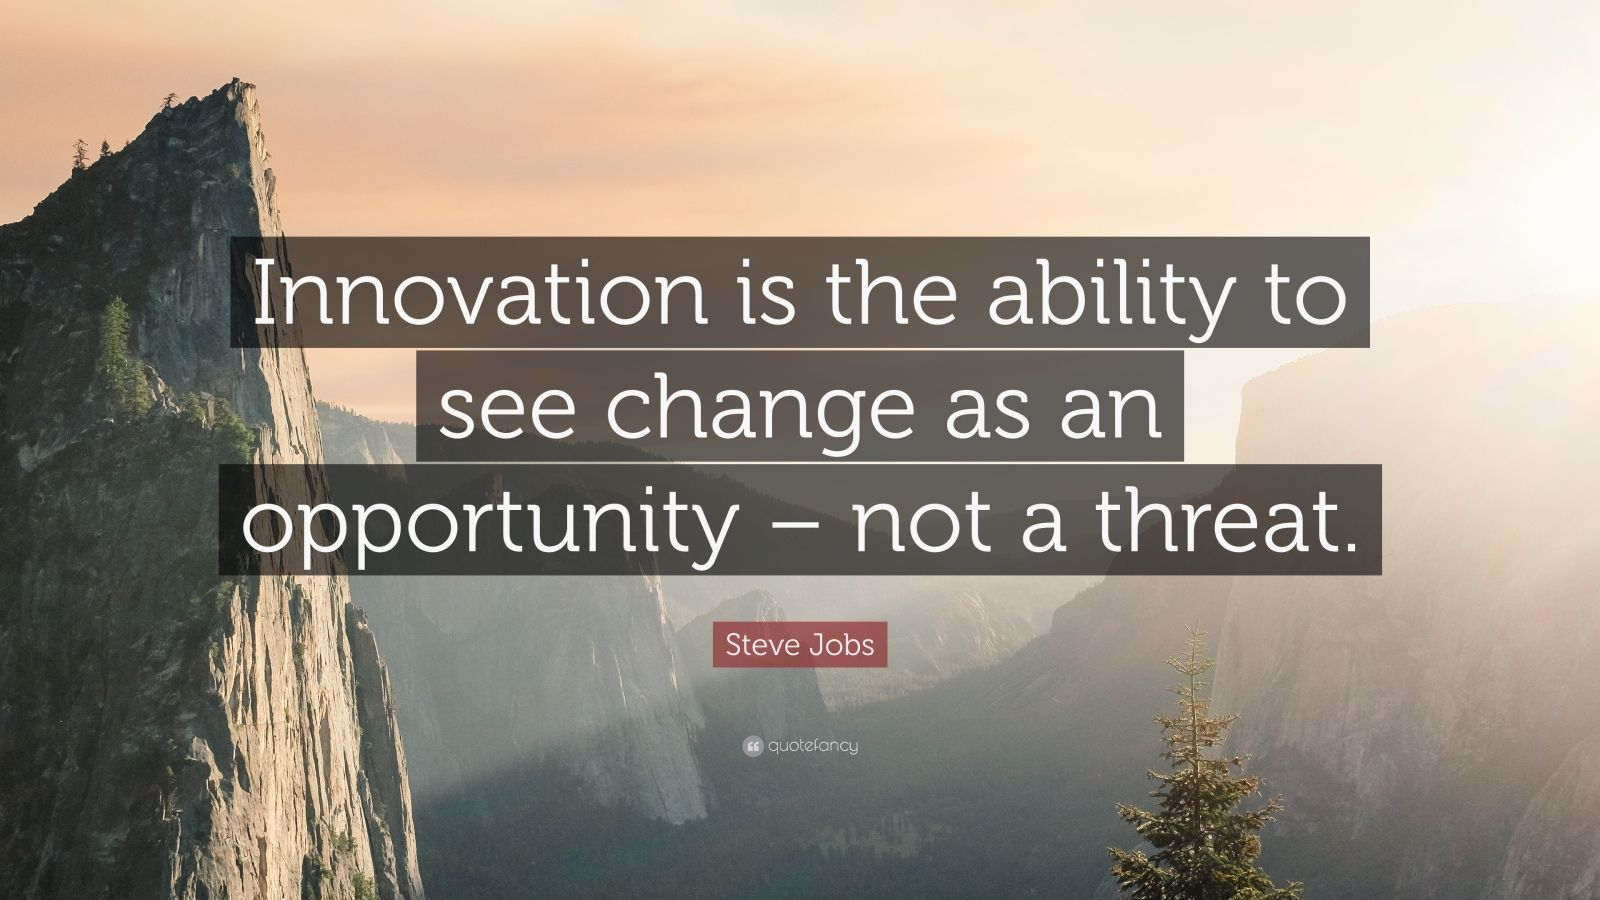 Steve Jobs Motivational Quotes Wallpaper Steve Jobs Quote Innovation Is The Ability To See Change